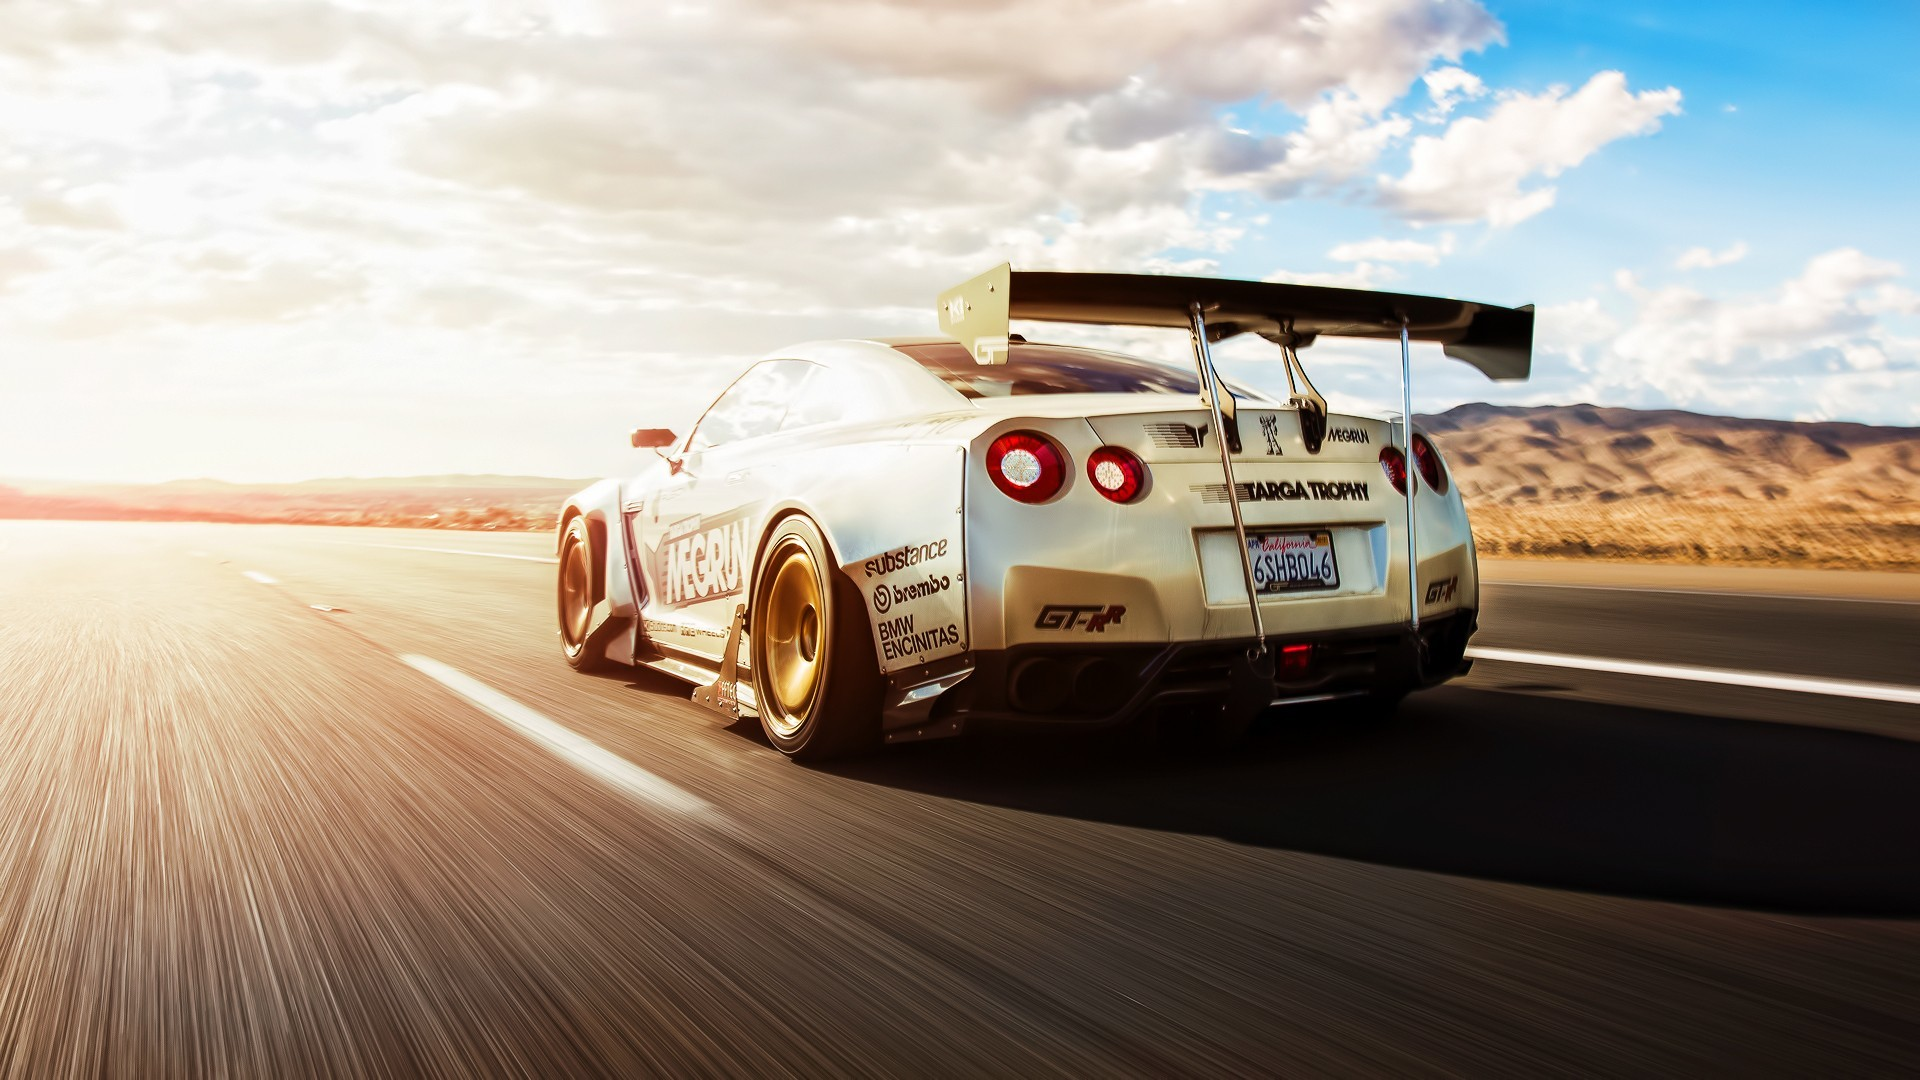 Cool Cars Drifting Wallpapers Hd Gtr R35 Wallpaper 69 Images